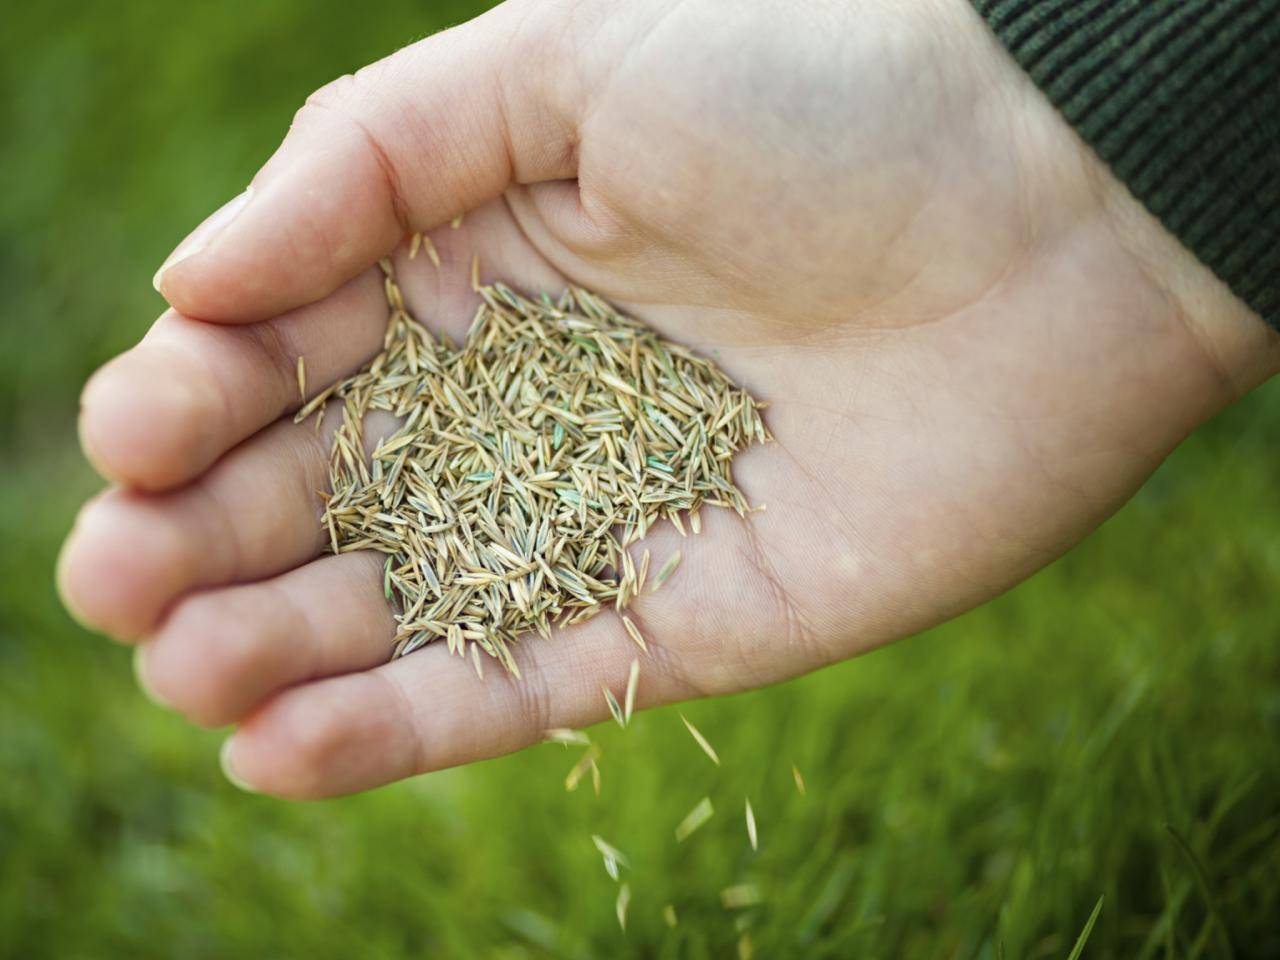 Magnificent Most Types St Augustine Grass Seed Sale St Augustine Grass Seed Walmart Grass Seed houzz-02 St Augustine Grass Seed